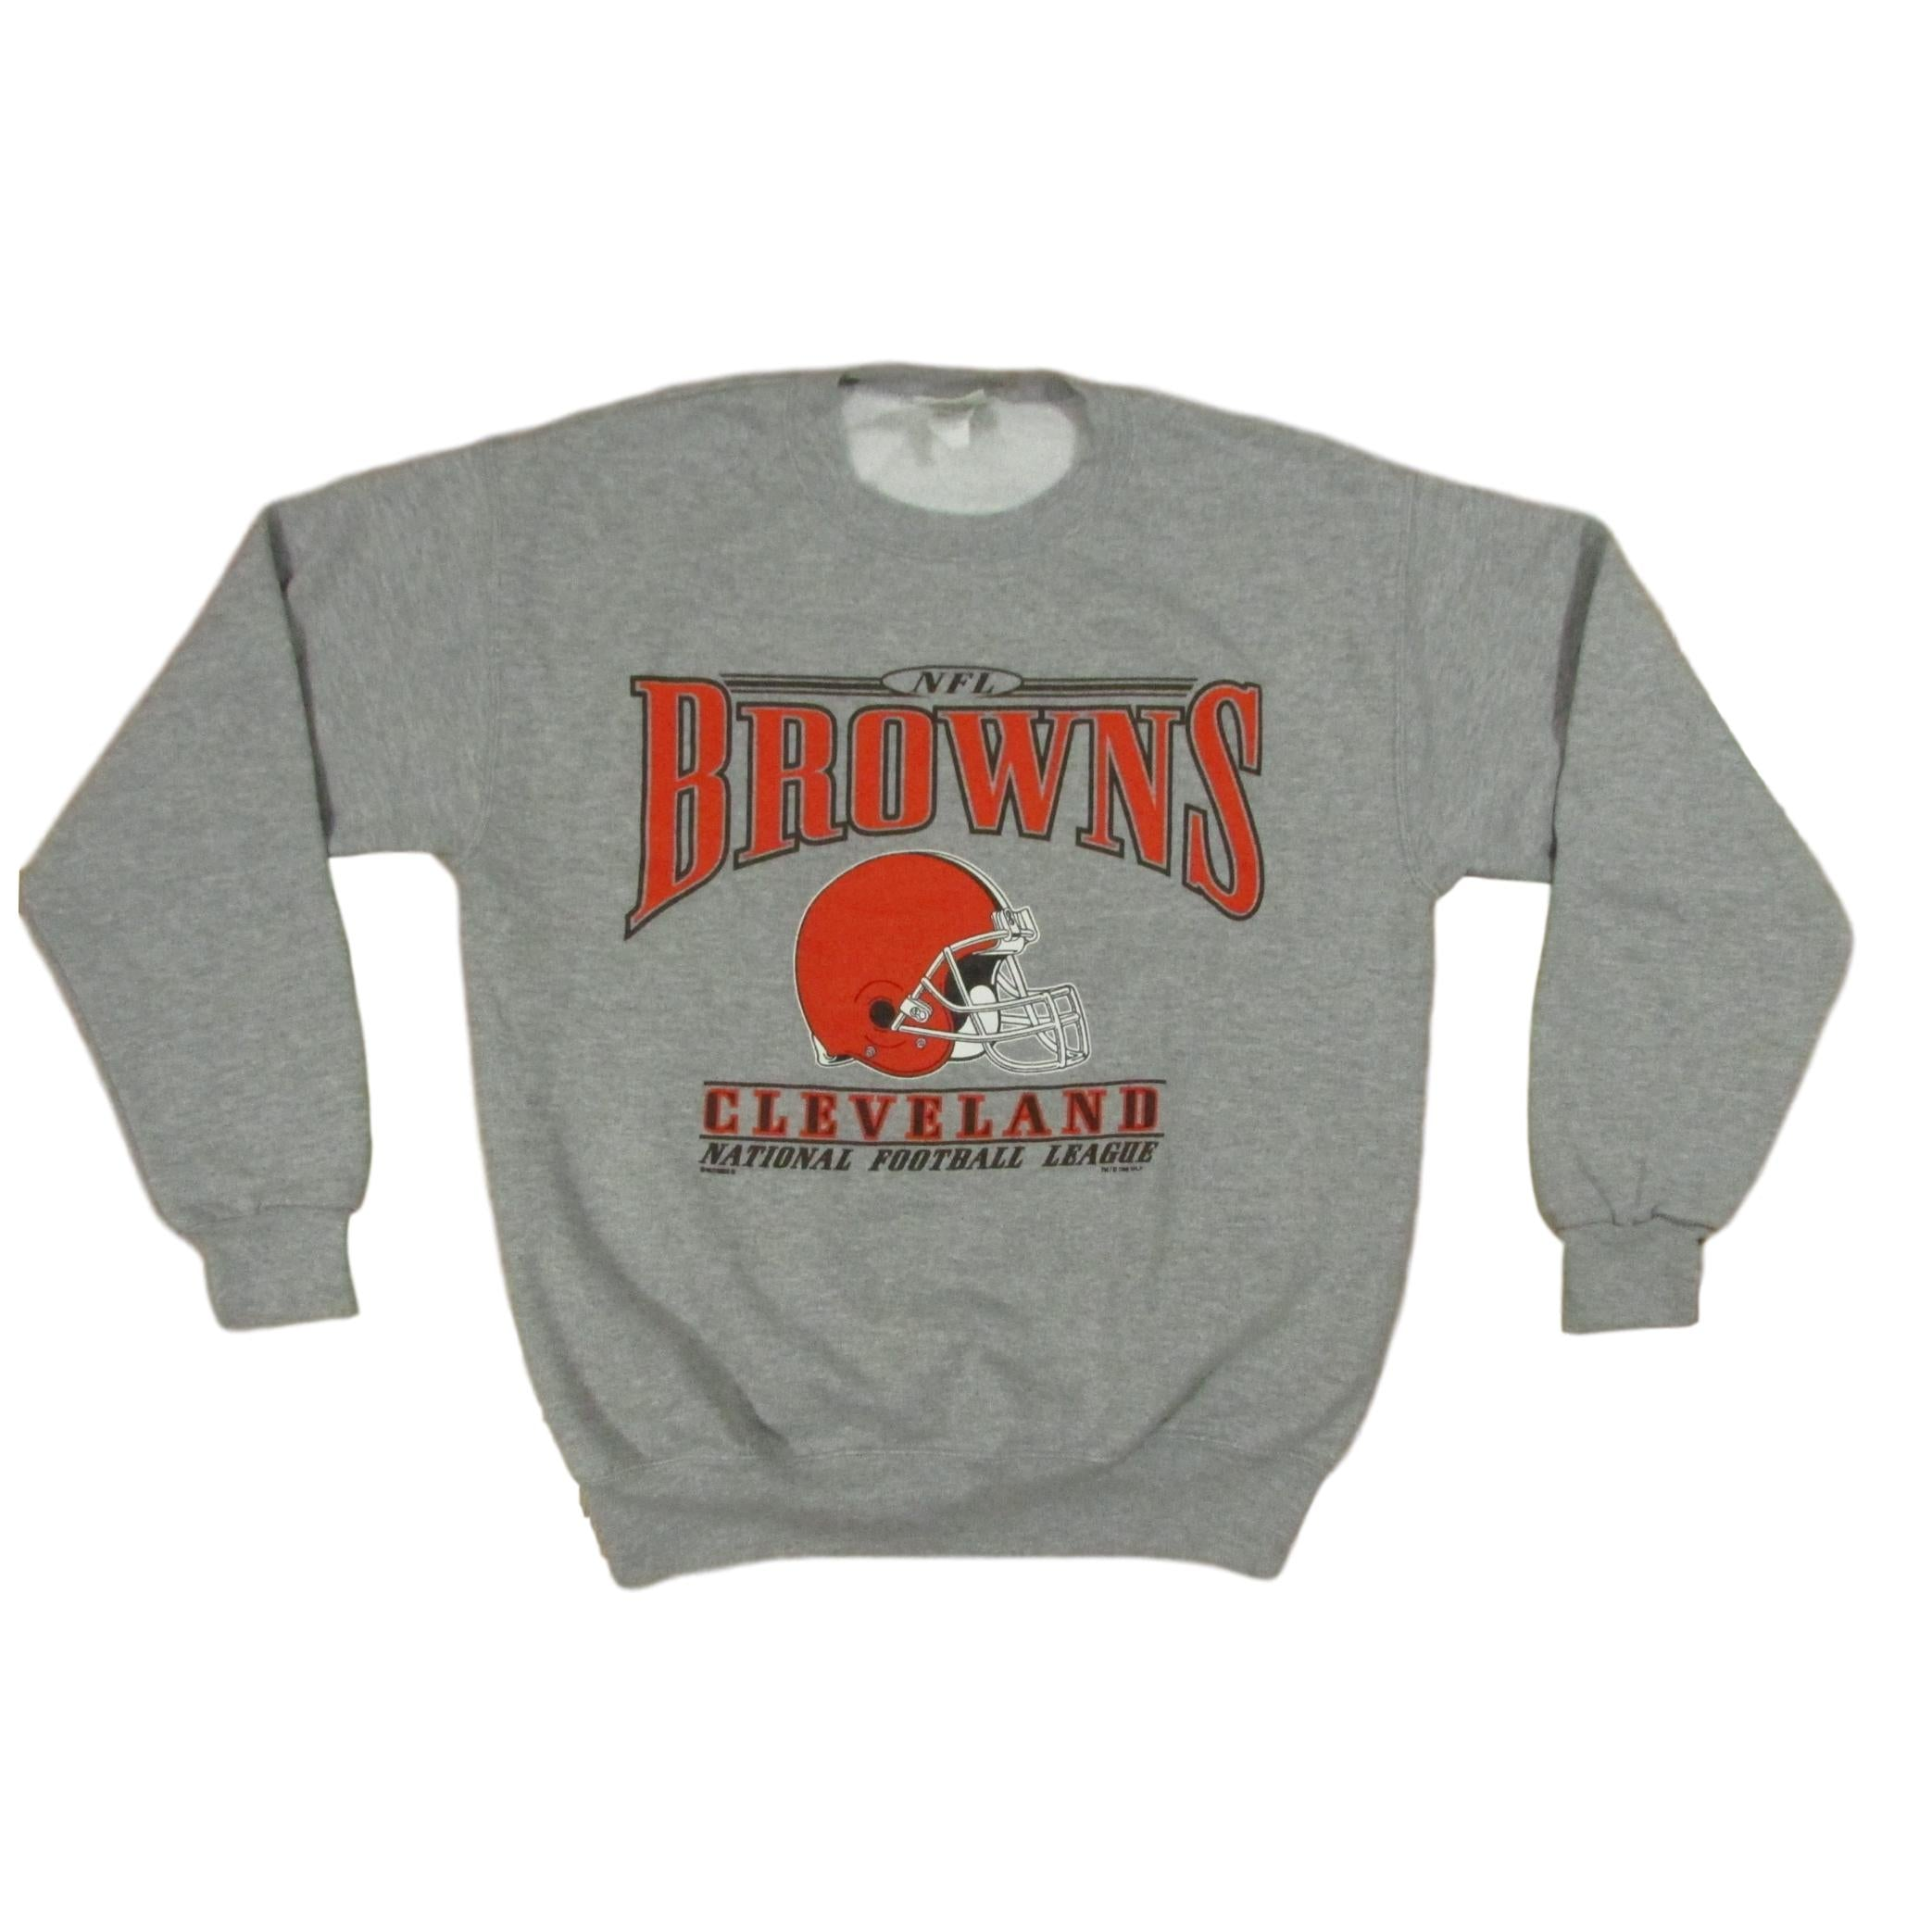 Cleveland Browns Gray Vintage Football Sweater Lee Sports Sz M